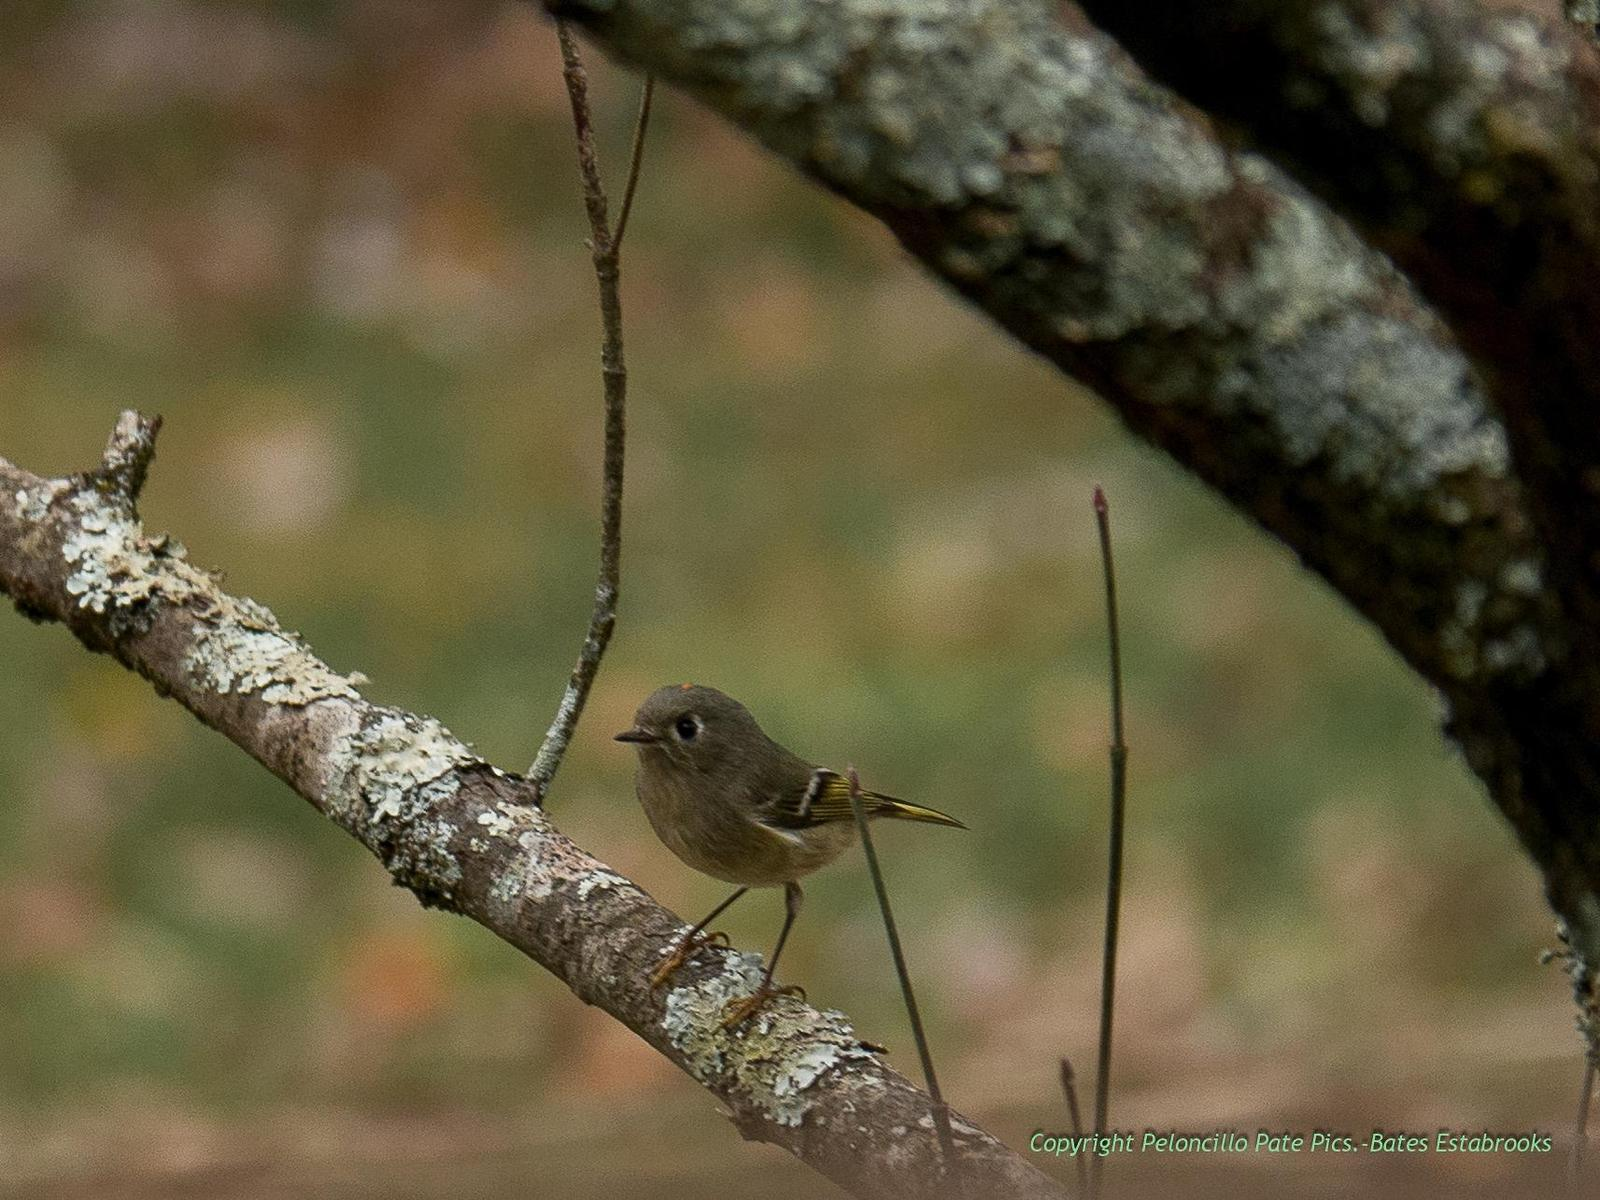 Ruby-crowned Kinglet Photo by Bates Estabrooks